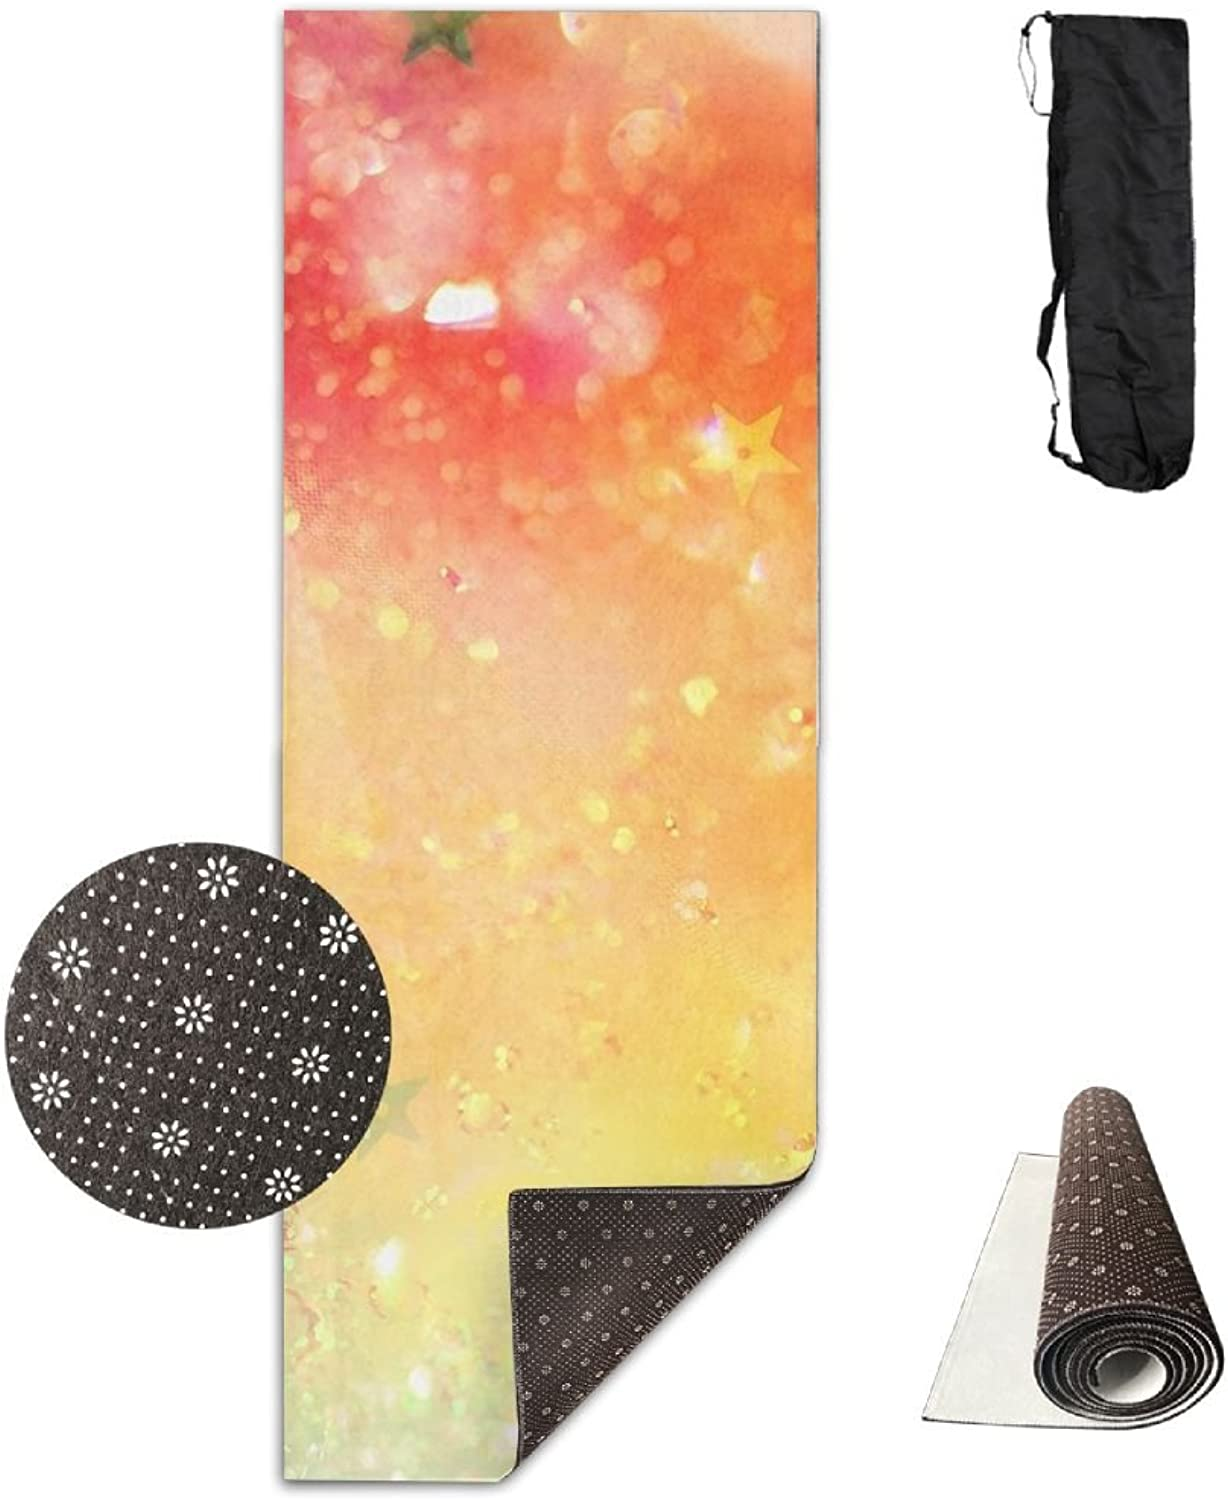 Non Slip Yoga Mat colorful Sparkles Premium Printed 24 X 71 Inches Great For Exercise Pilates Gymnastics Carrying Strap